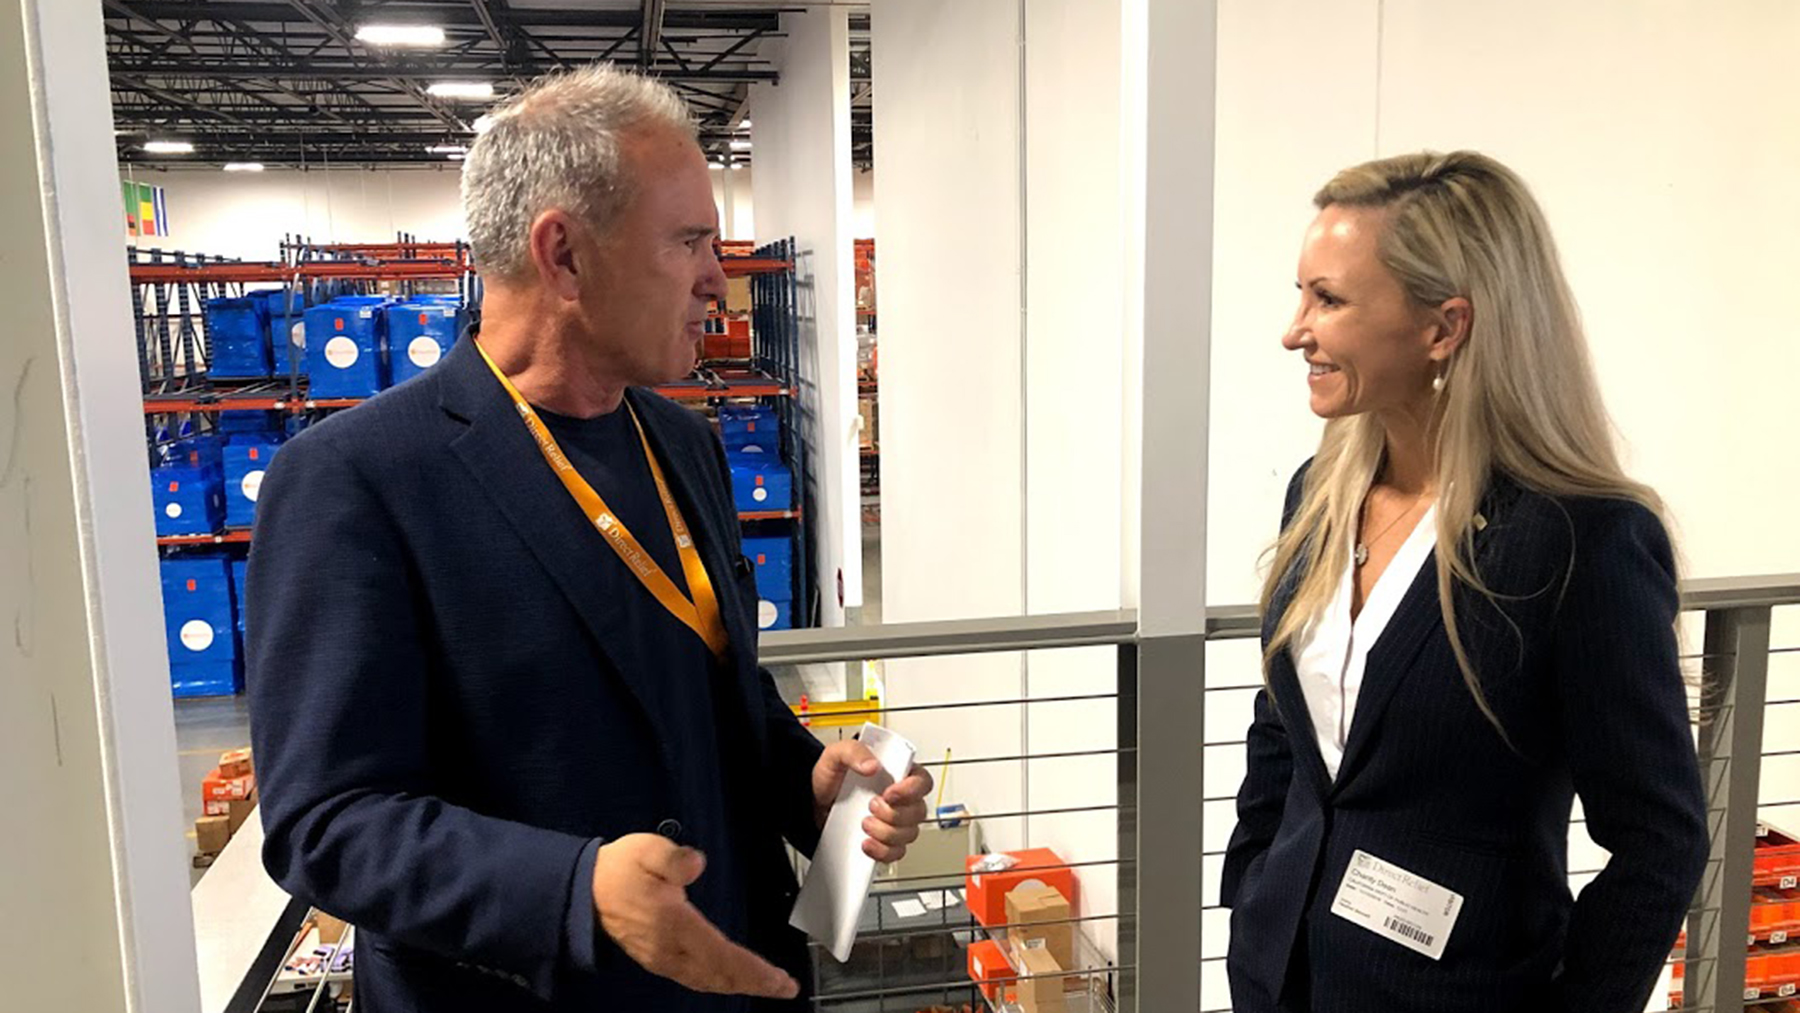 Dr. Charity Dean in conversation with Thomas Tighe, Direct Relief's president and CEO, in the organization's medical warehouse on November 12, 2019. (Tony Morain/Direct Relief)